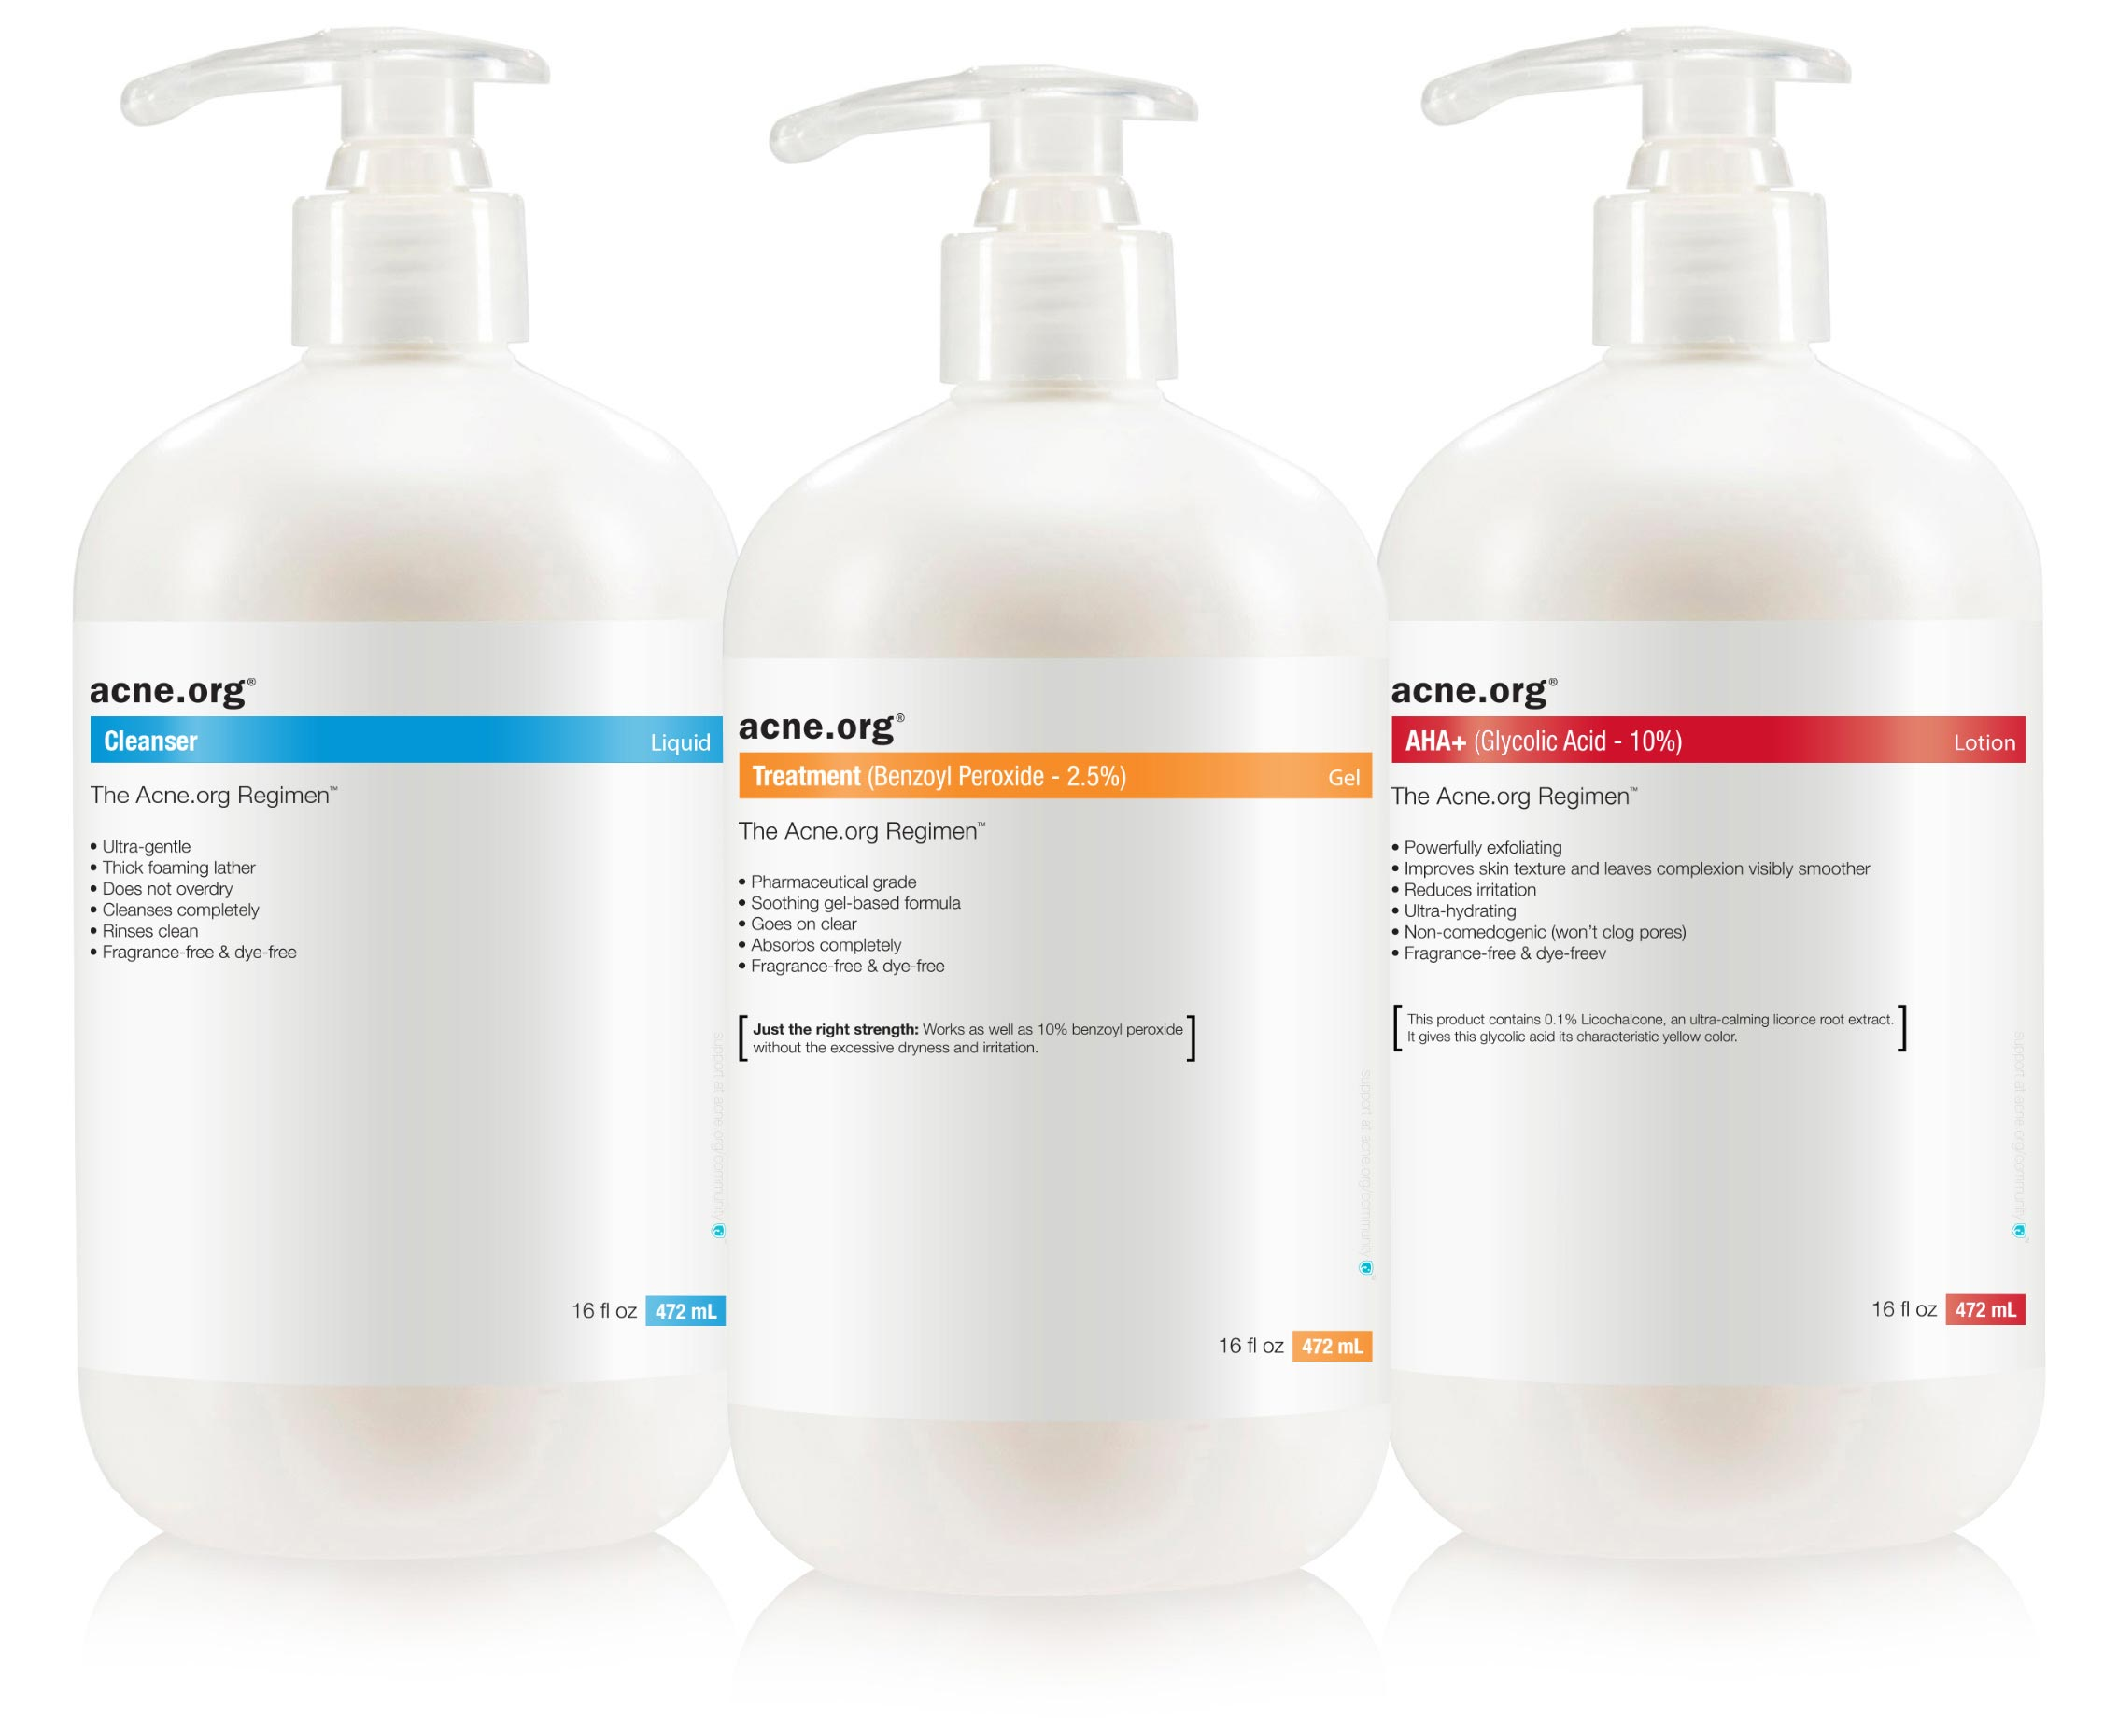 Acne.org body regimen products